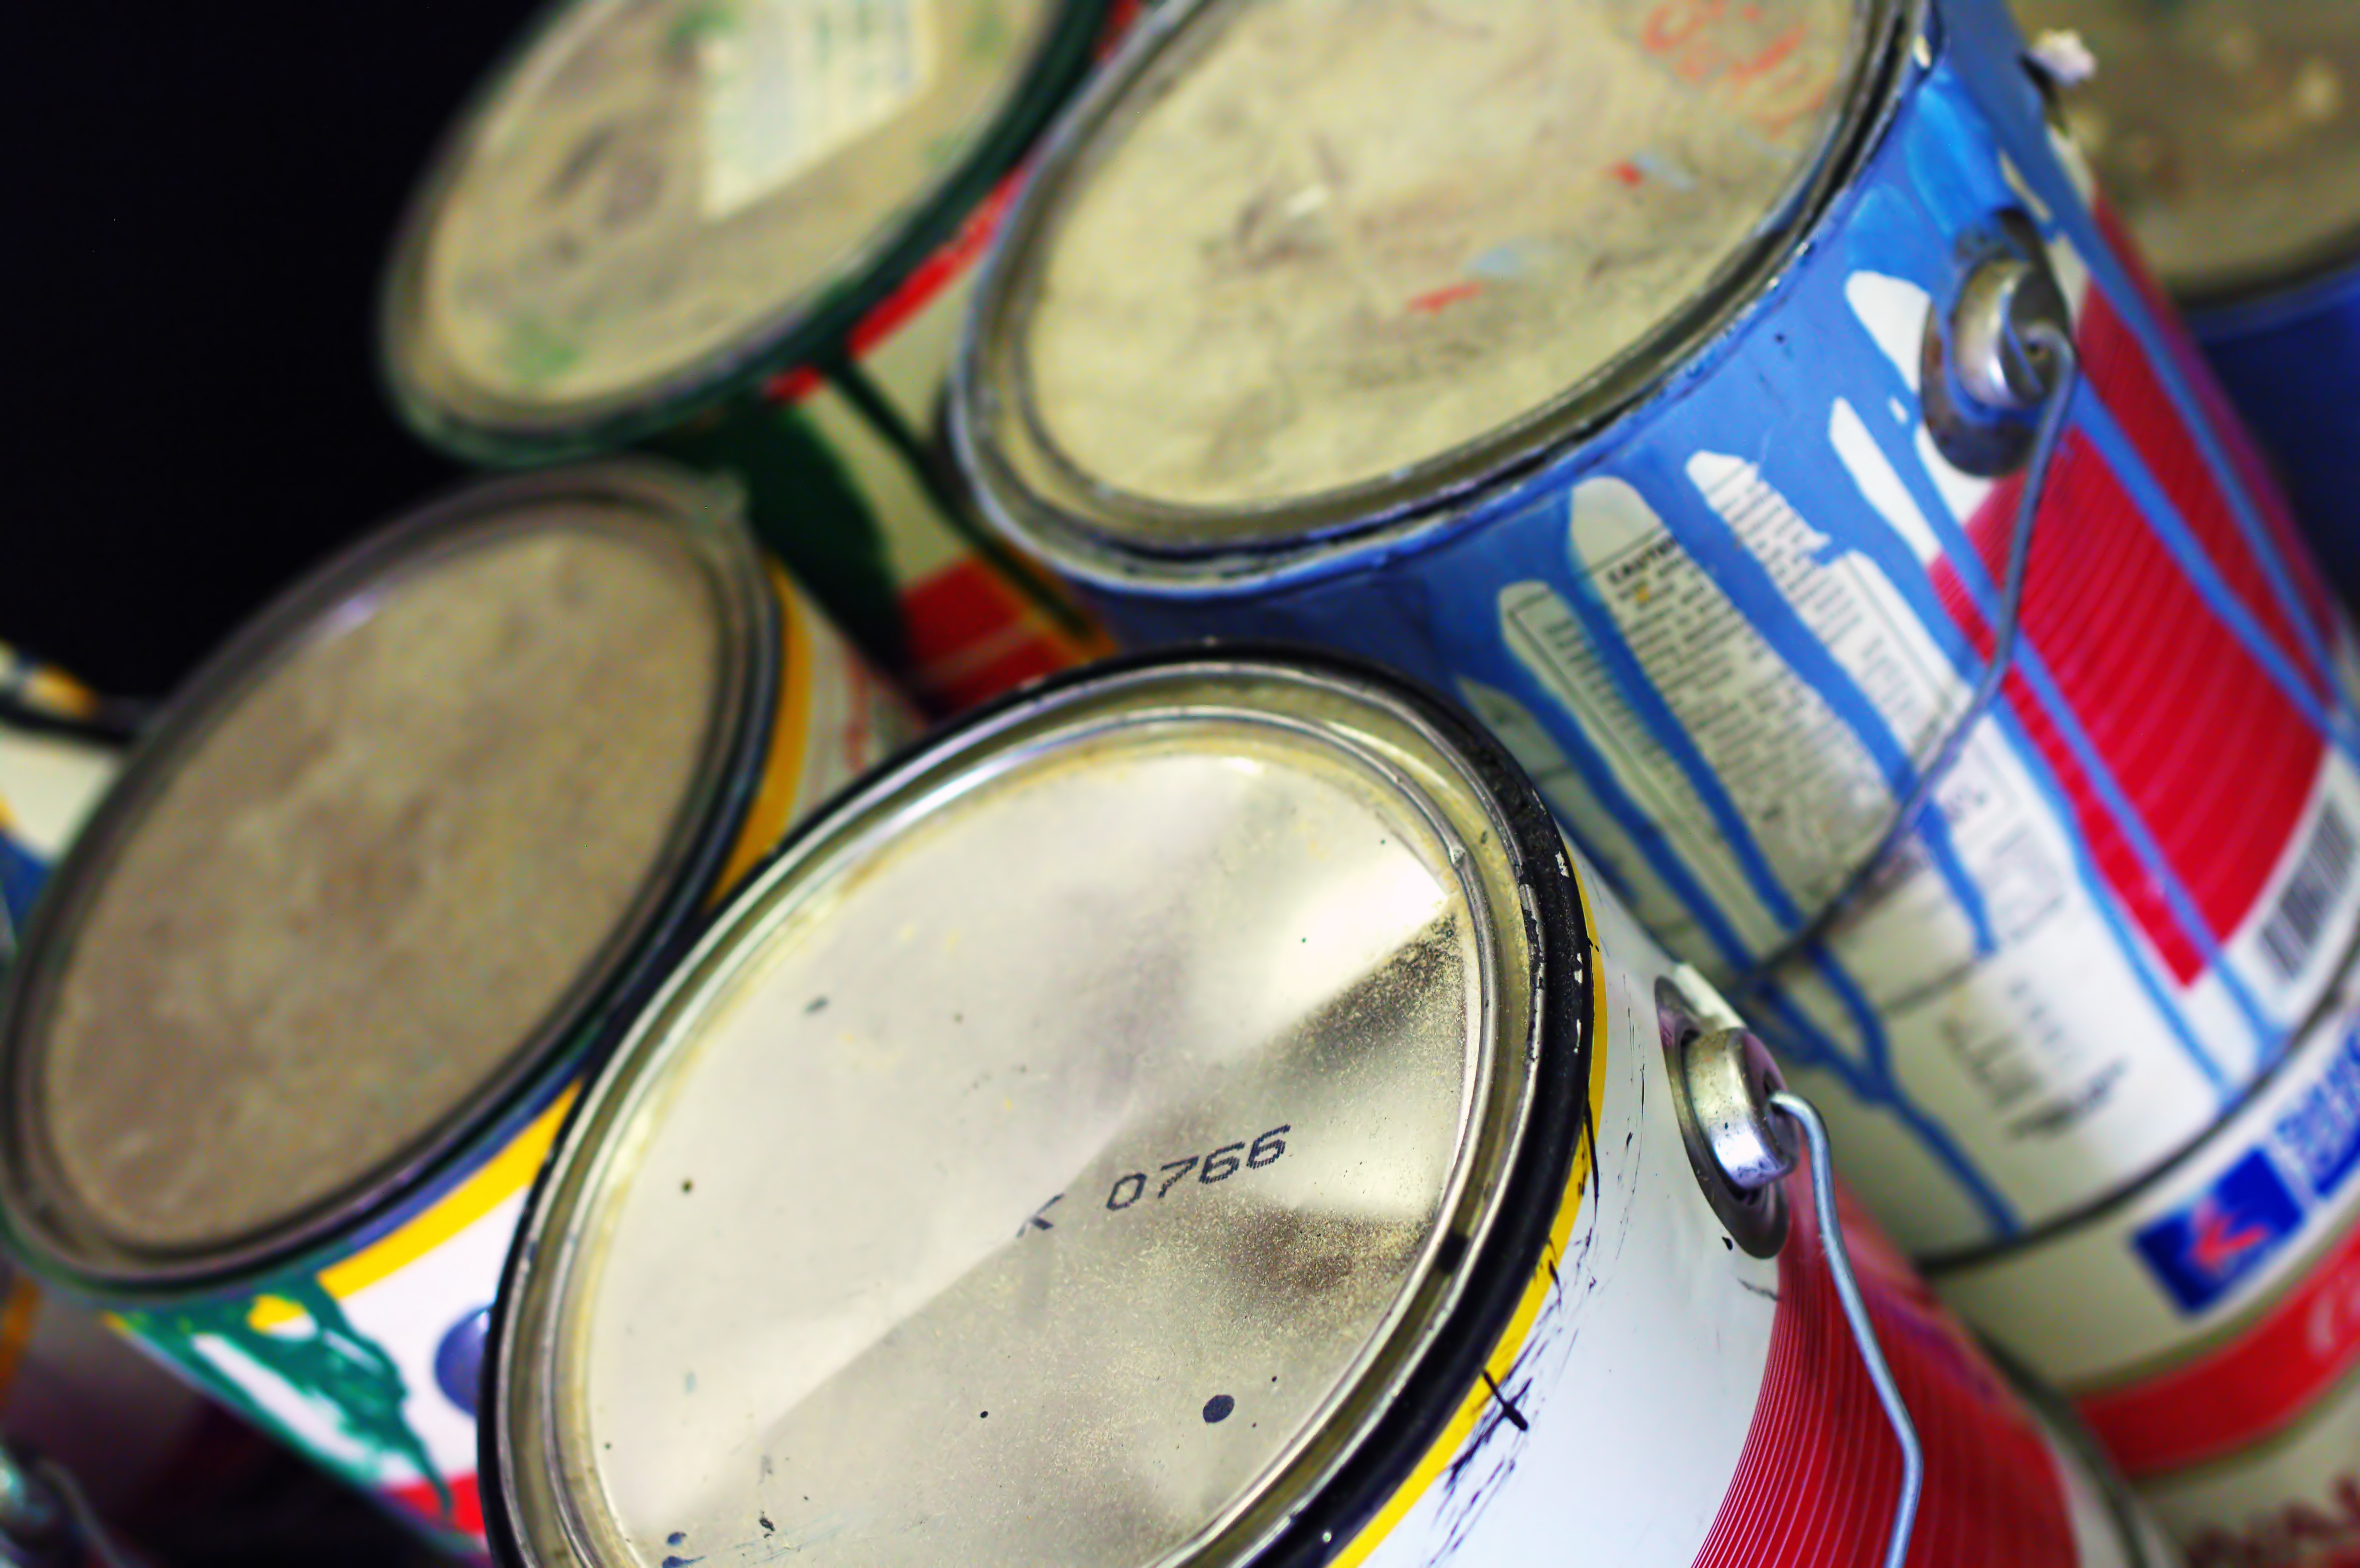 Brilliant Home Hack: Use Kitty Litter To Dispose Of Old Paint